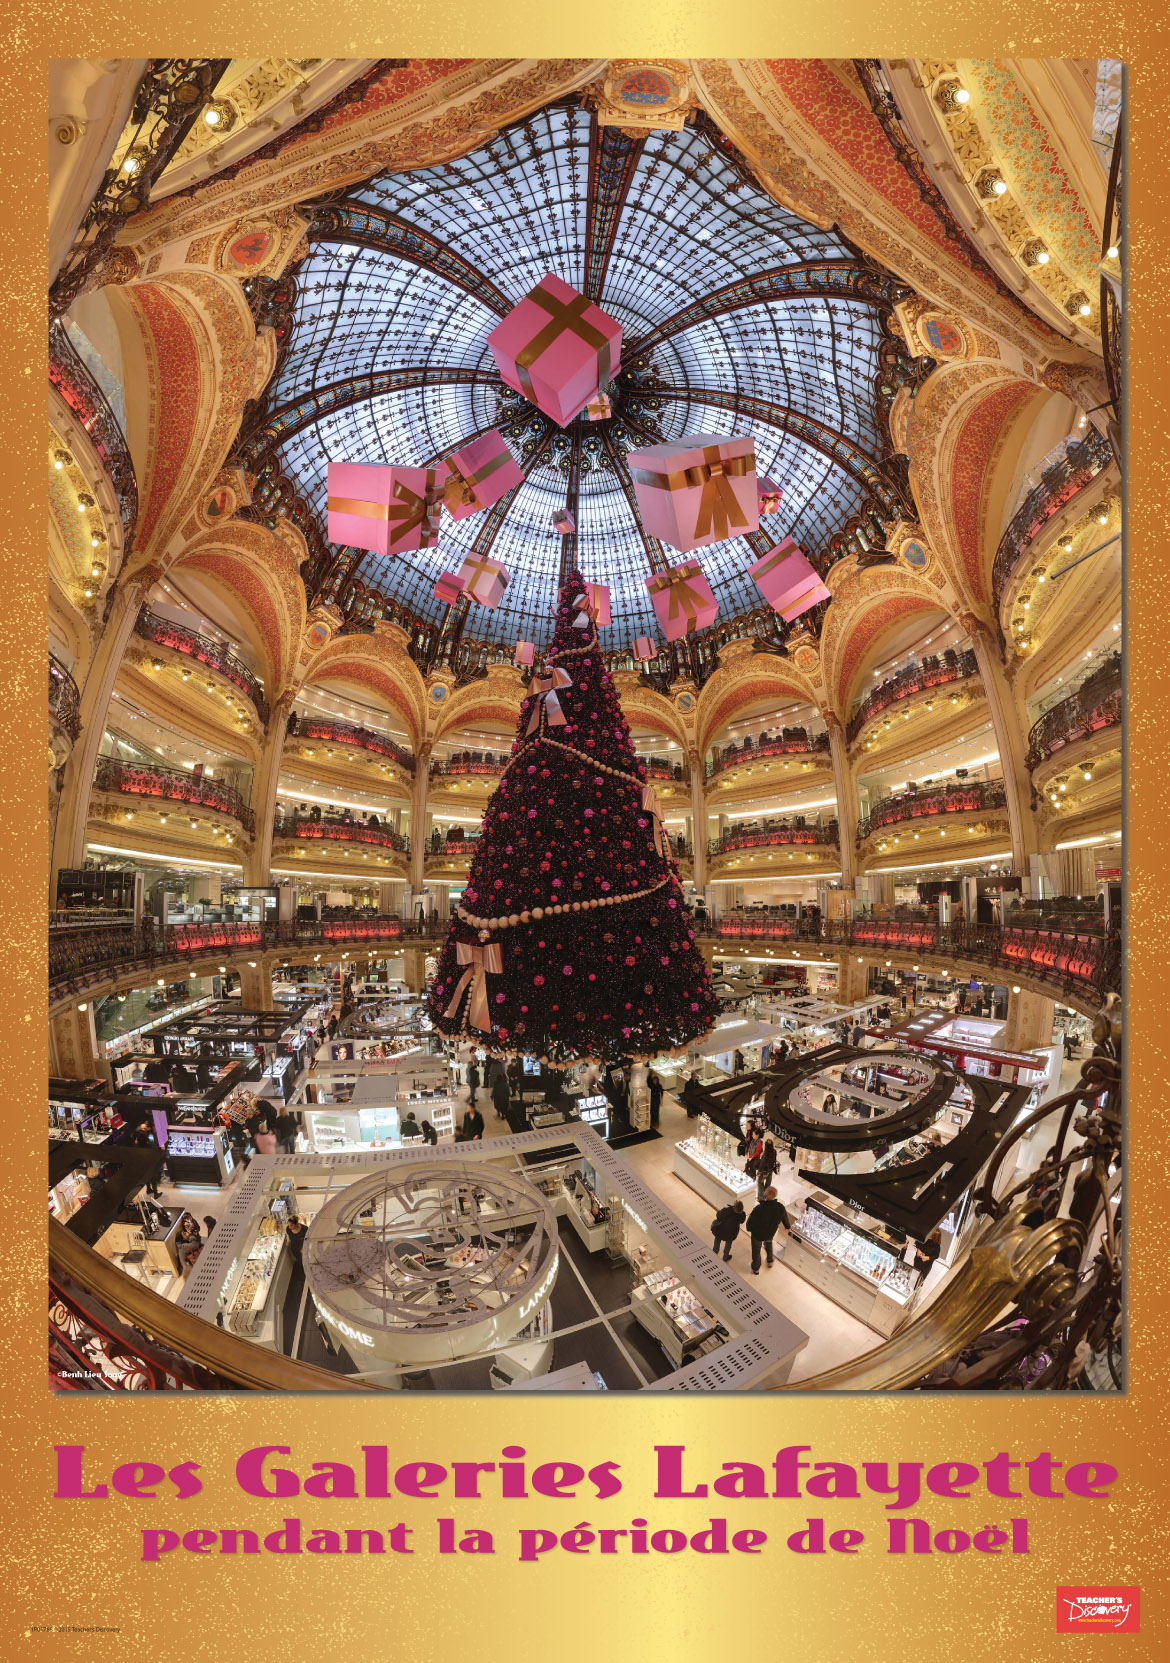 Les Galeries Lafayette at Christmas Poster